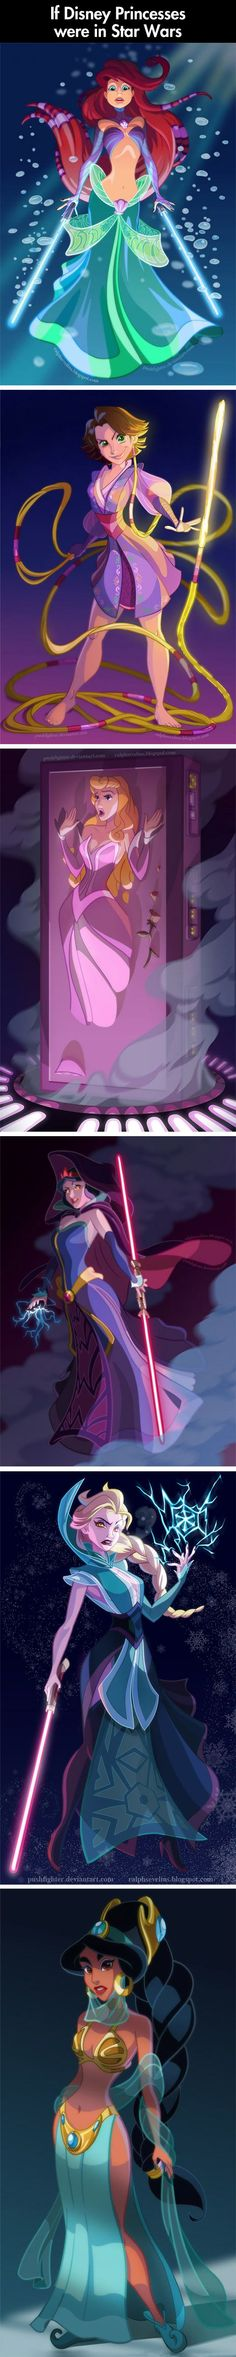 If Disney princesses were in Star Wars.